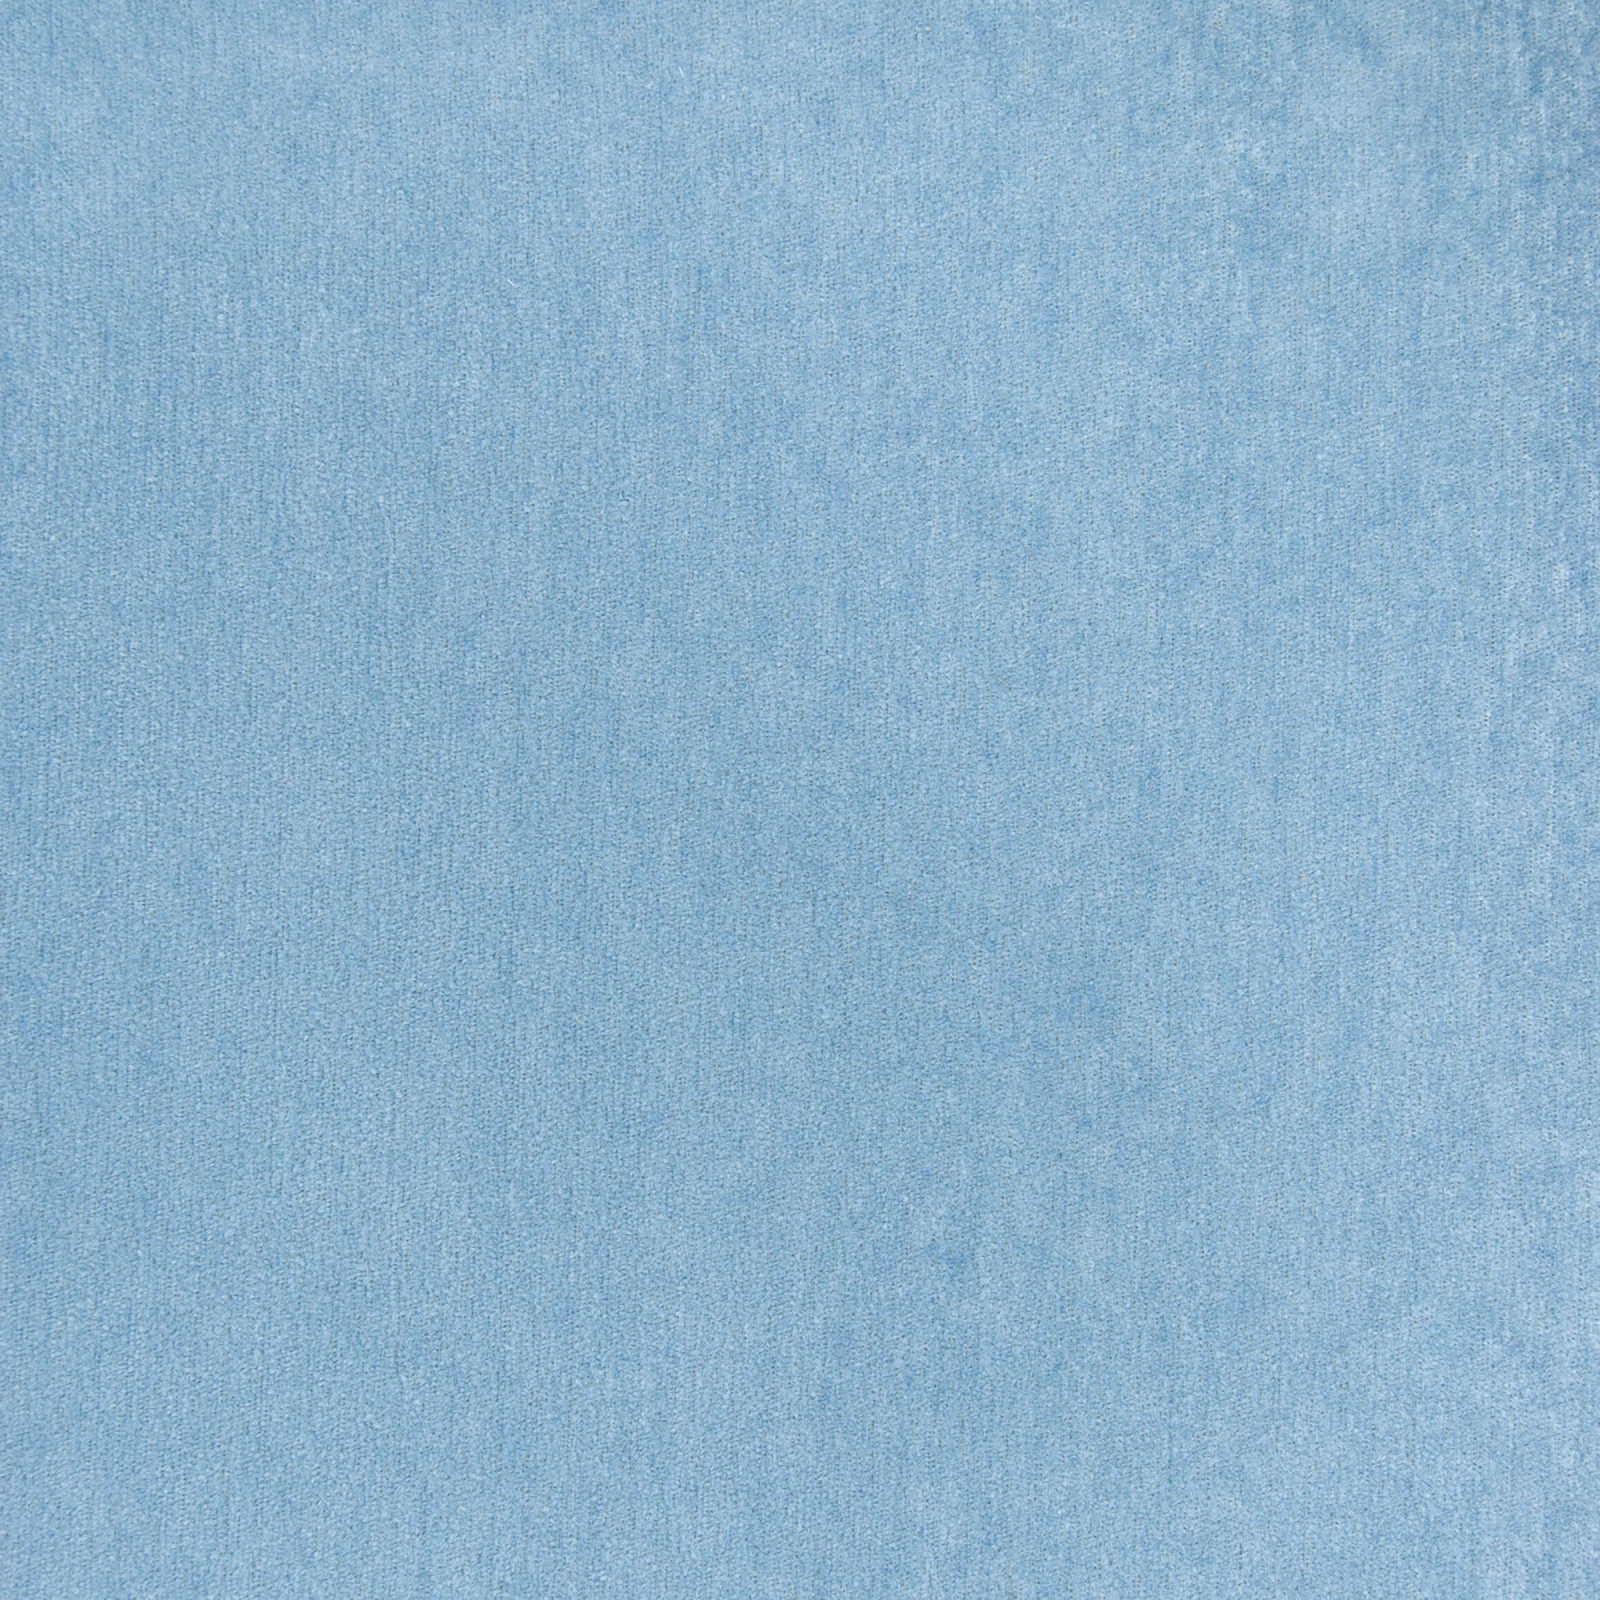 Wedgewood Blue Solid Woven Upholstery Fabric